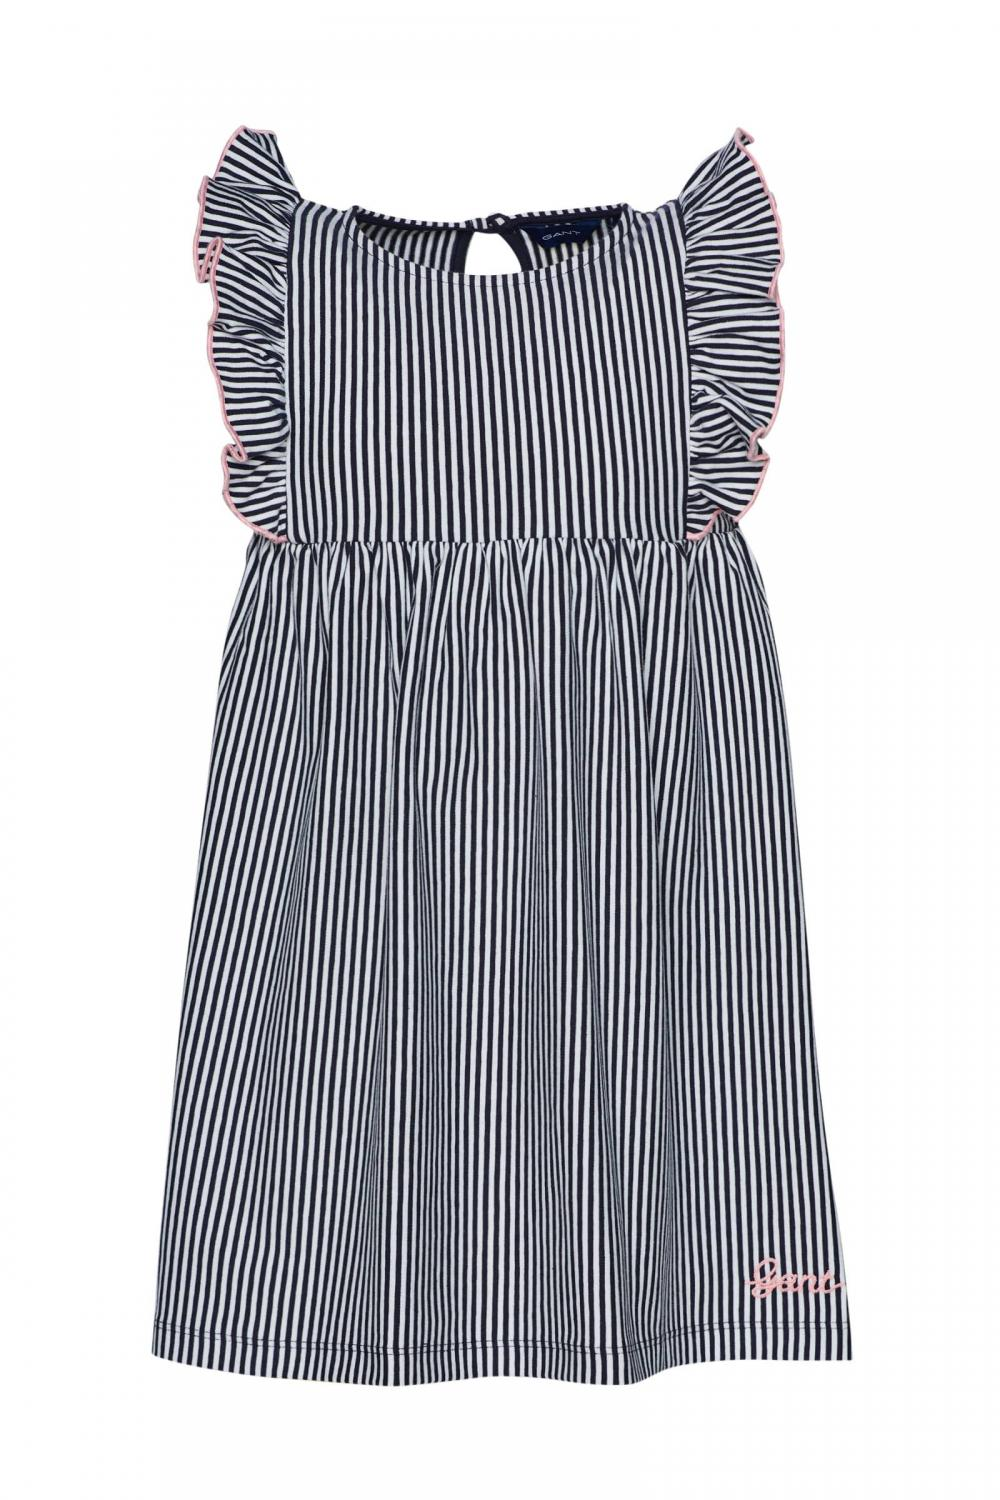 GANT STRIPED JERSEY DRESS BLUE